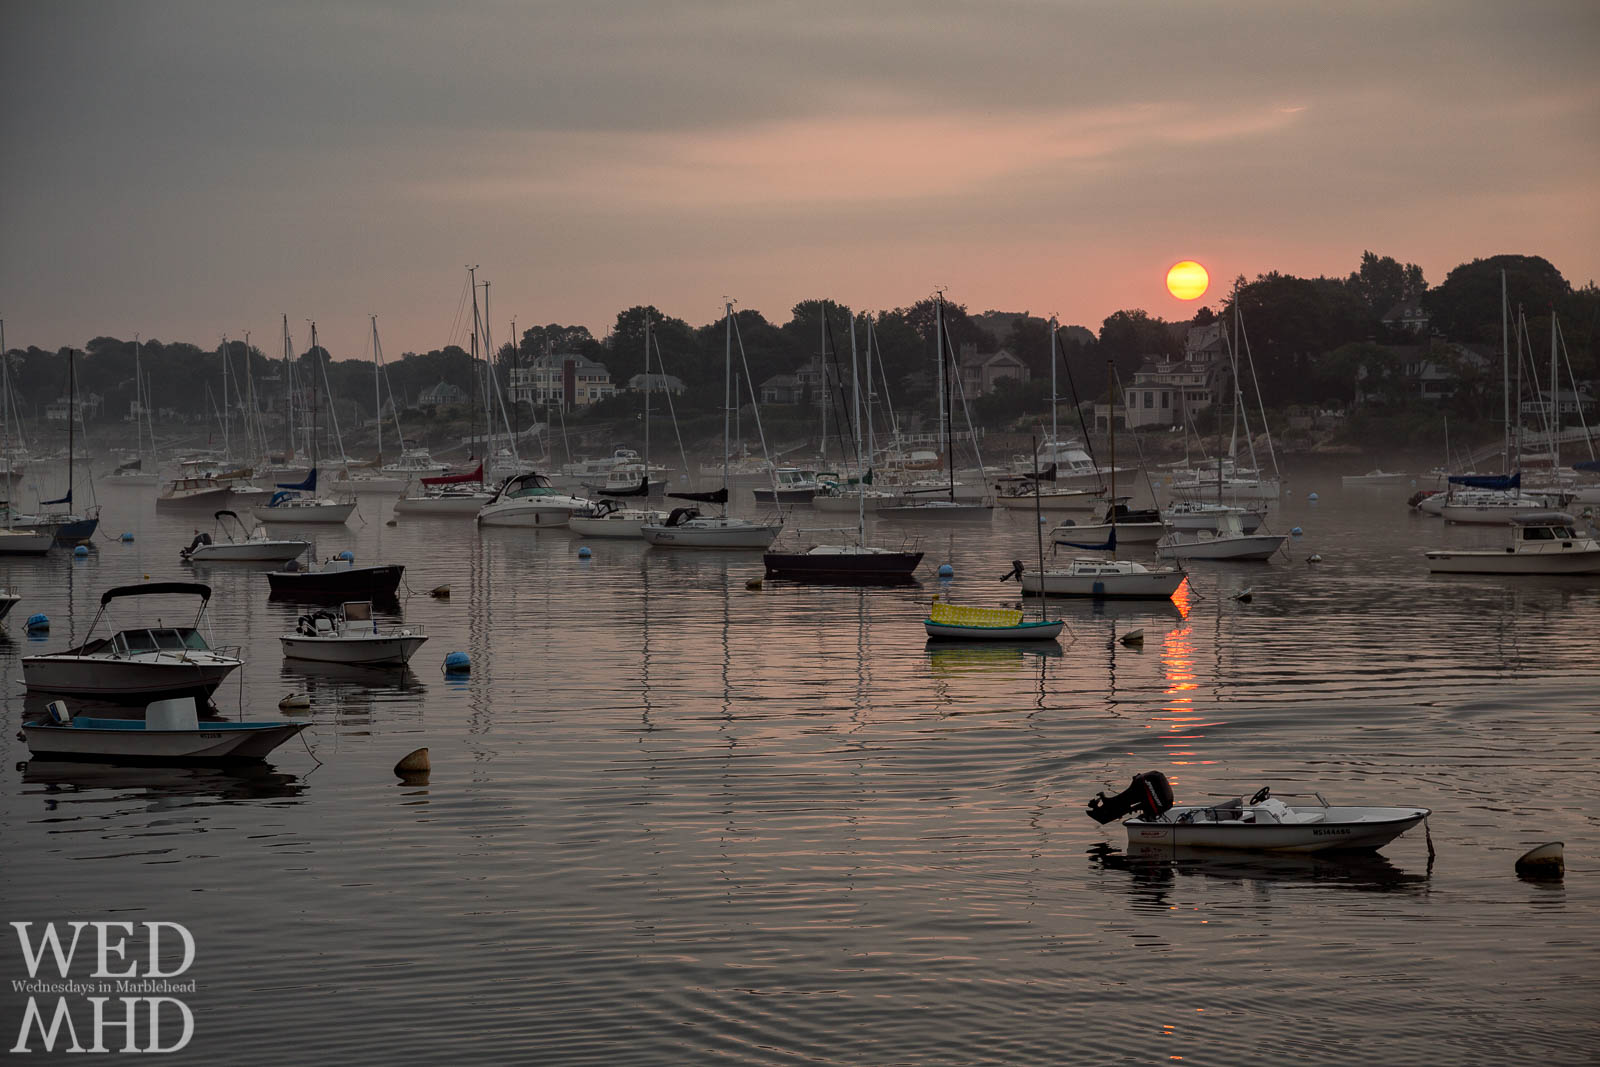 The red sun rising over Marblehead Neck casts its light onto Marblehead Harbor filled with boats as Summer nears its end